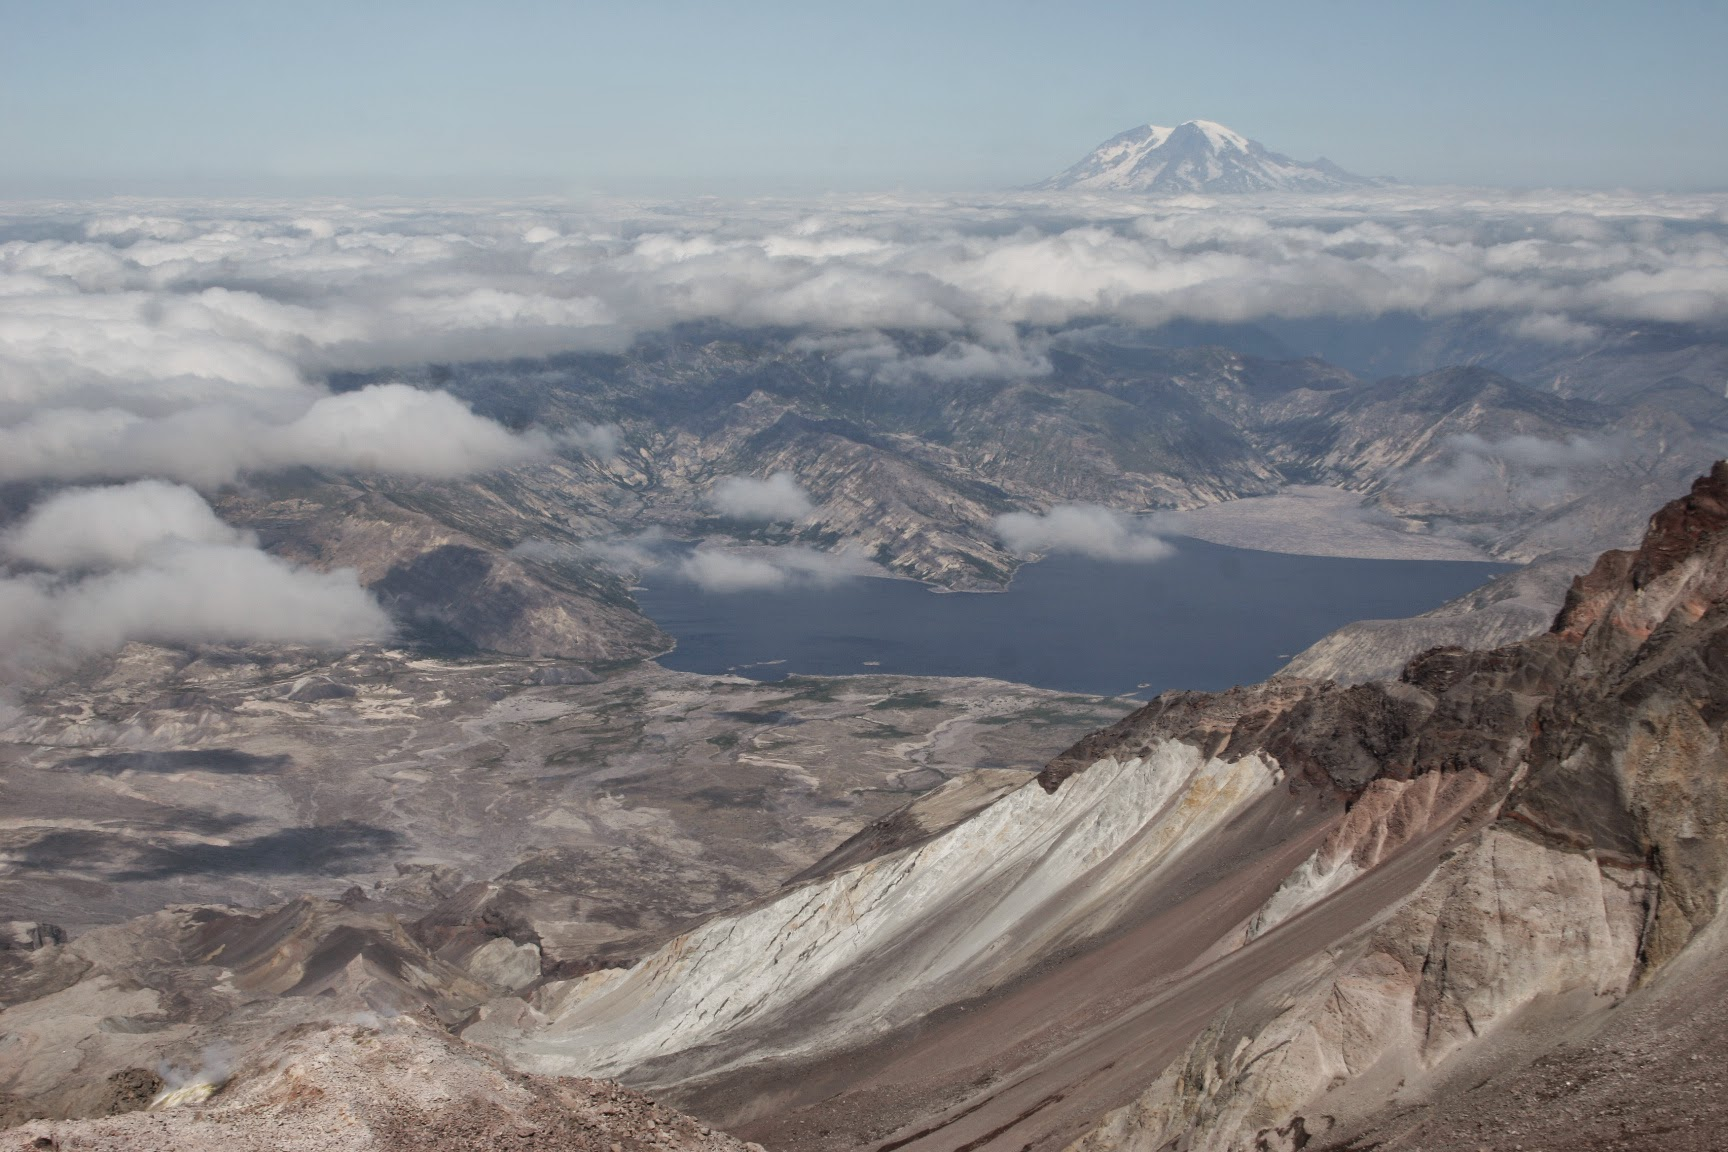 Brown volcanic crater in the foreground, a lake and hills in the distance and a high mountain in the far distance at the summit of a Mt St Helens climb